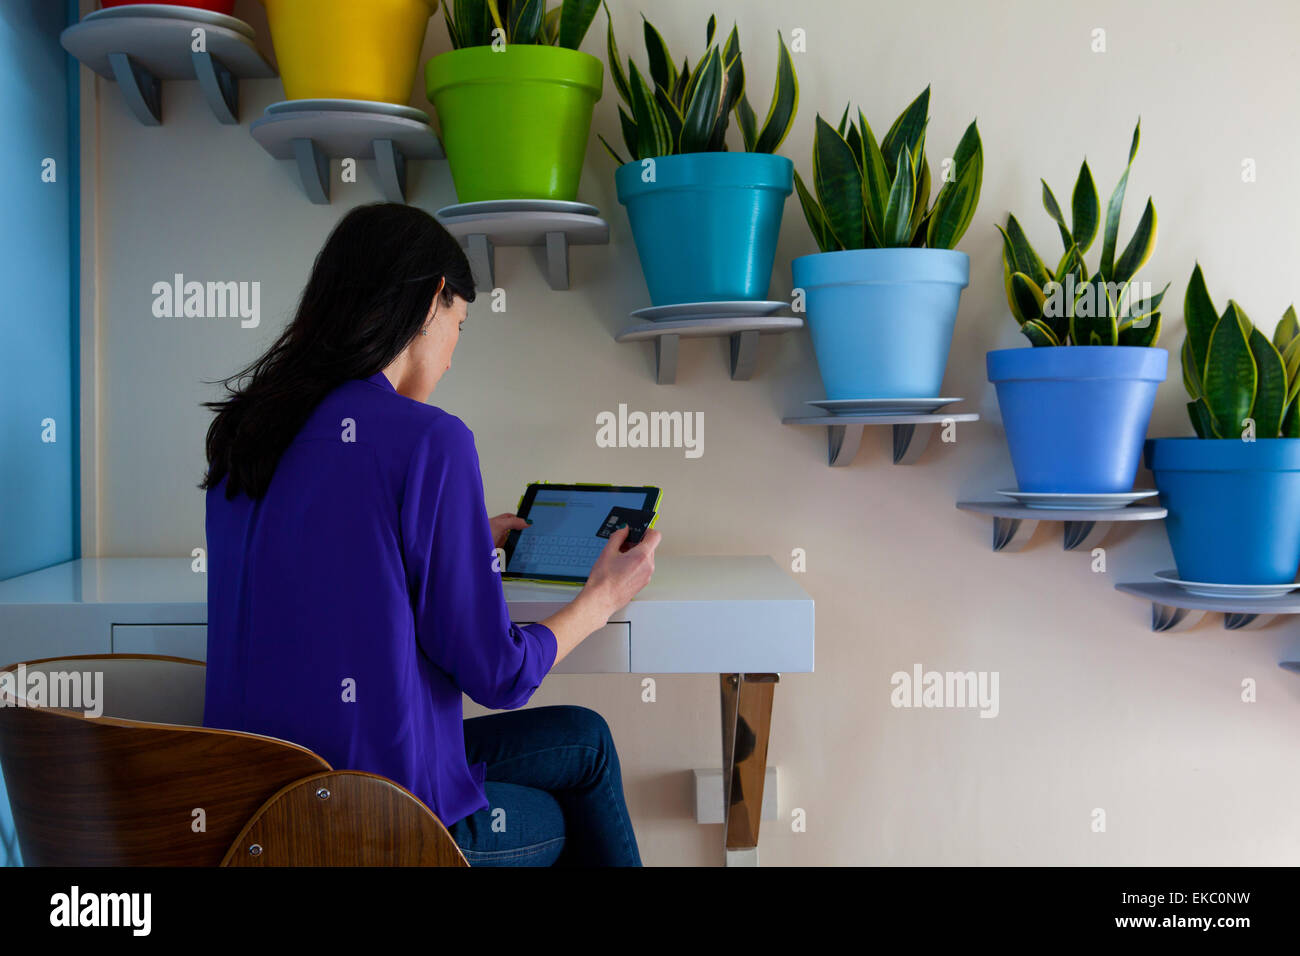 Woman making payment on digital tablet in front of diagonal row of potted plants - Stock Image